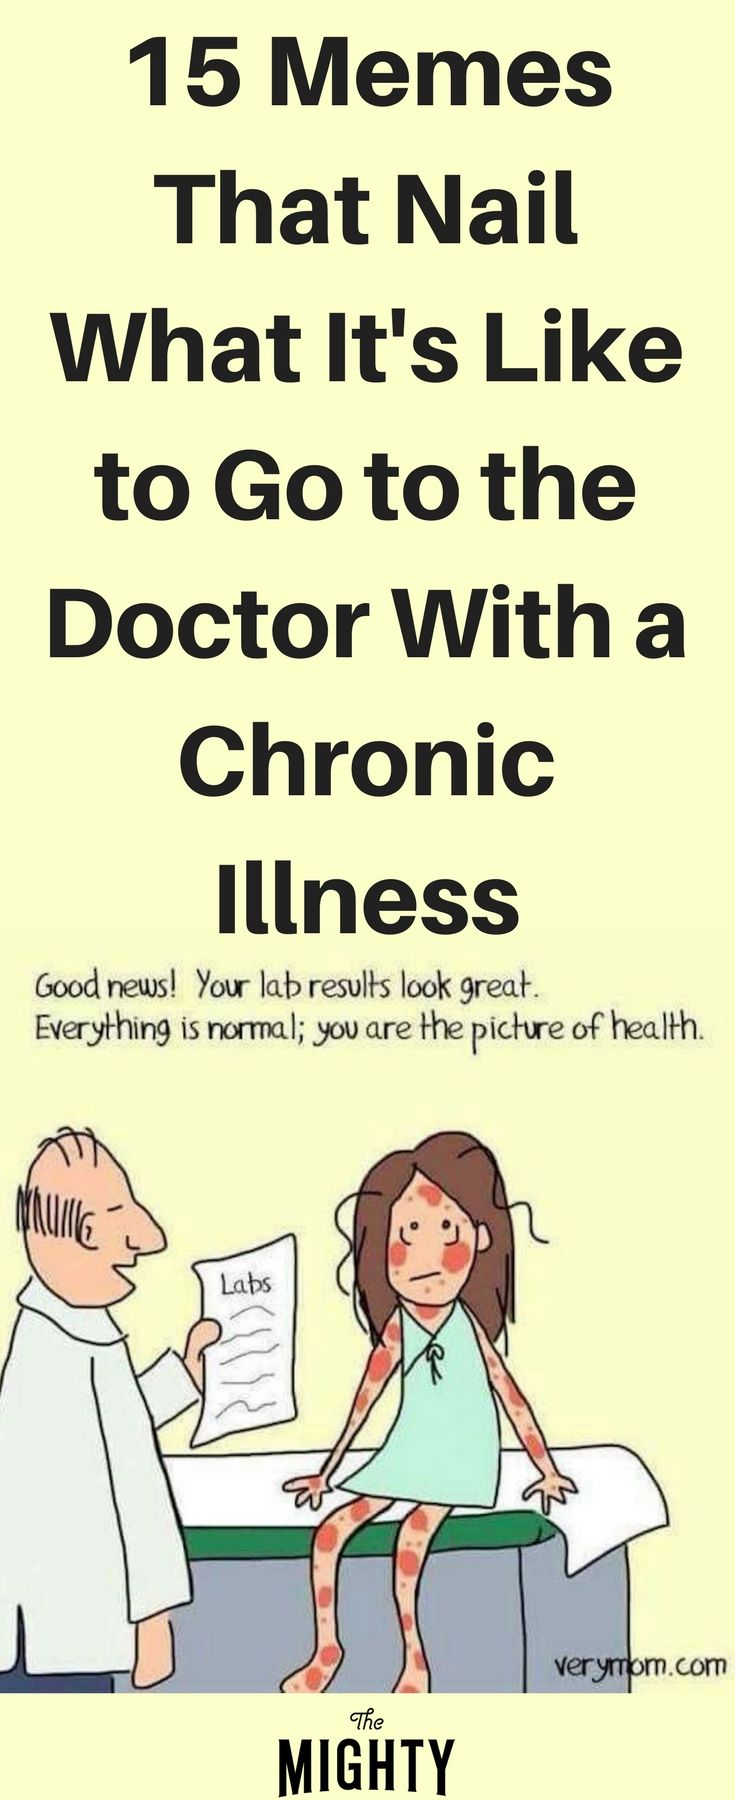 a1d9dcf662ca865f75b6a5dc03289526 15 memes that nail what it's like to go to the doctor with a chronic